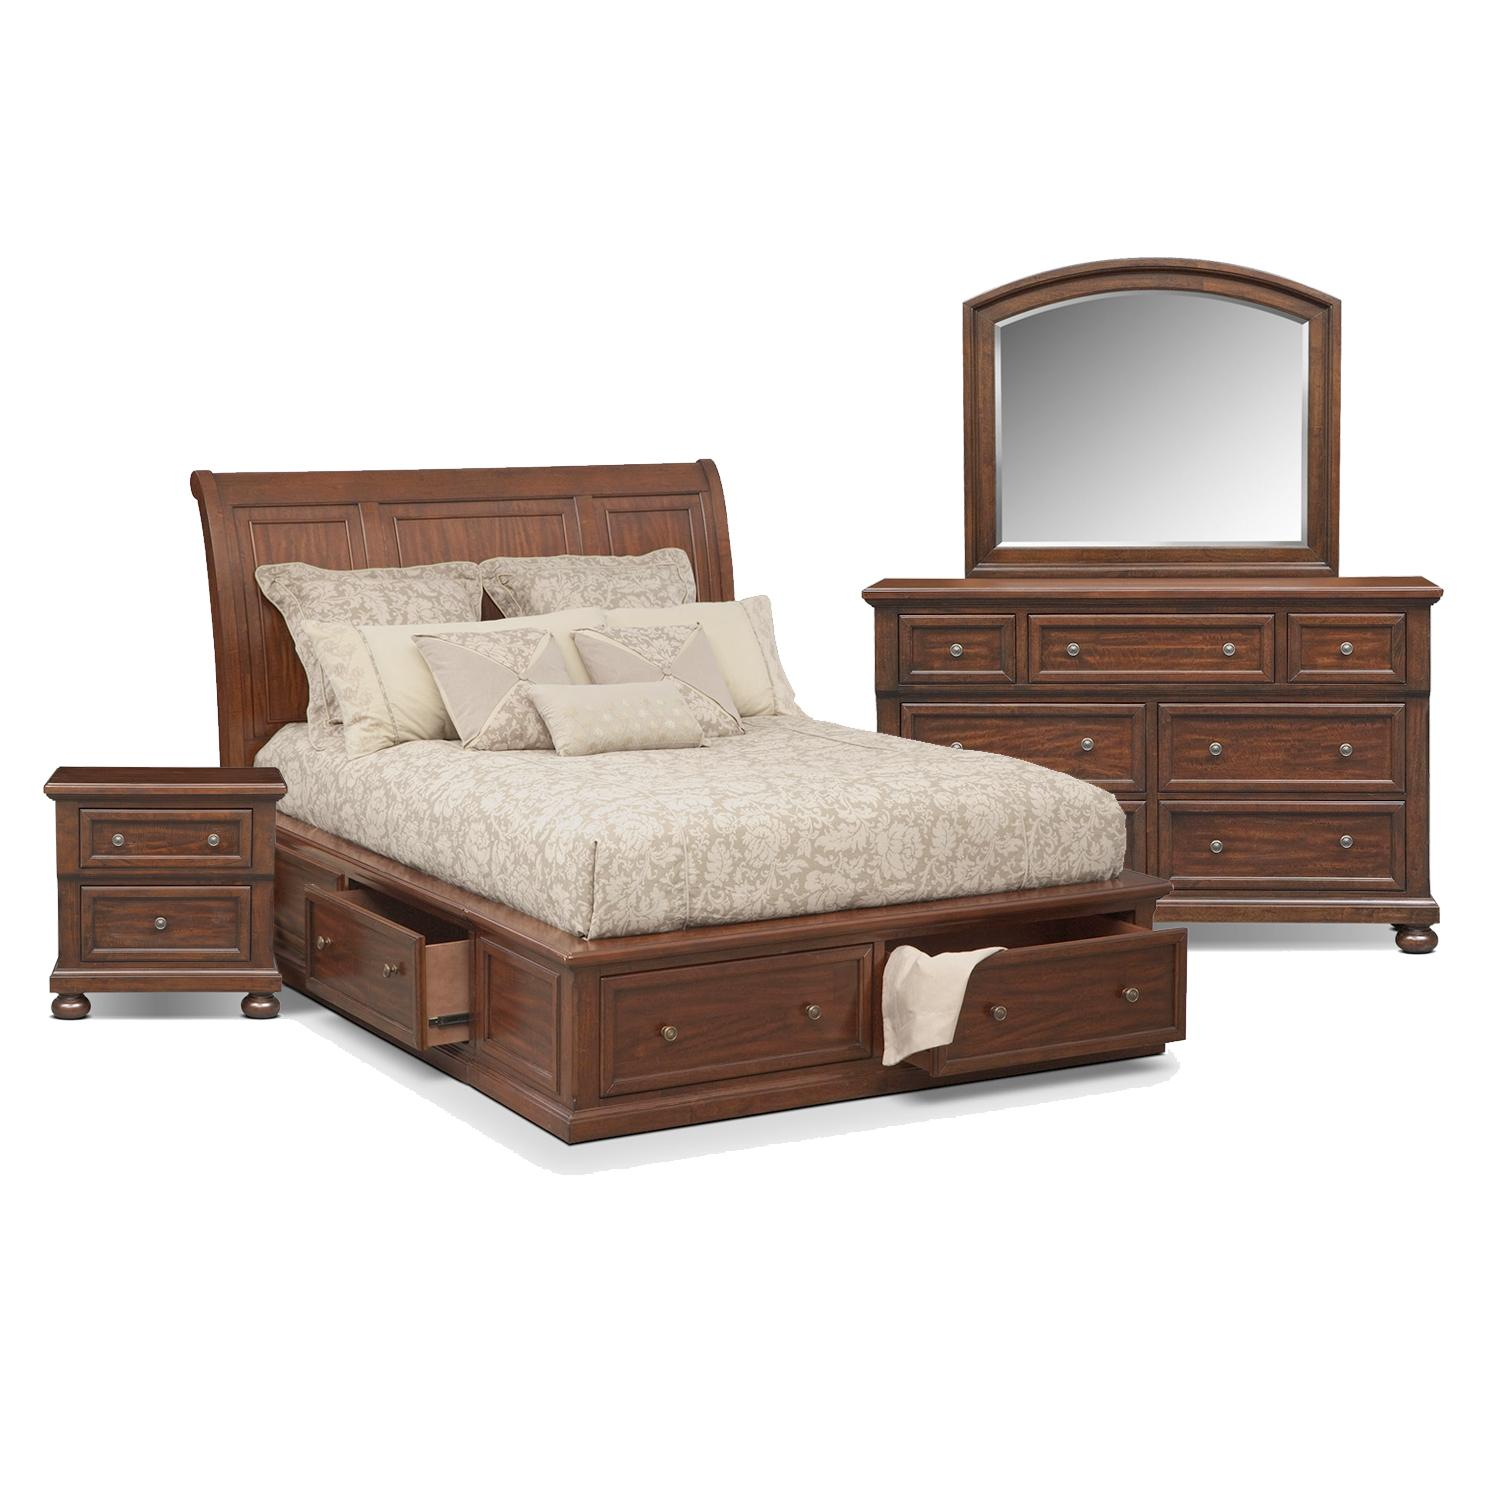 Value City Furniture